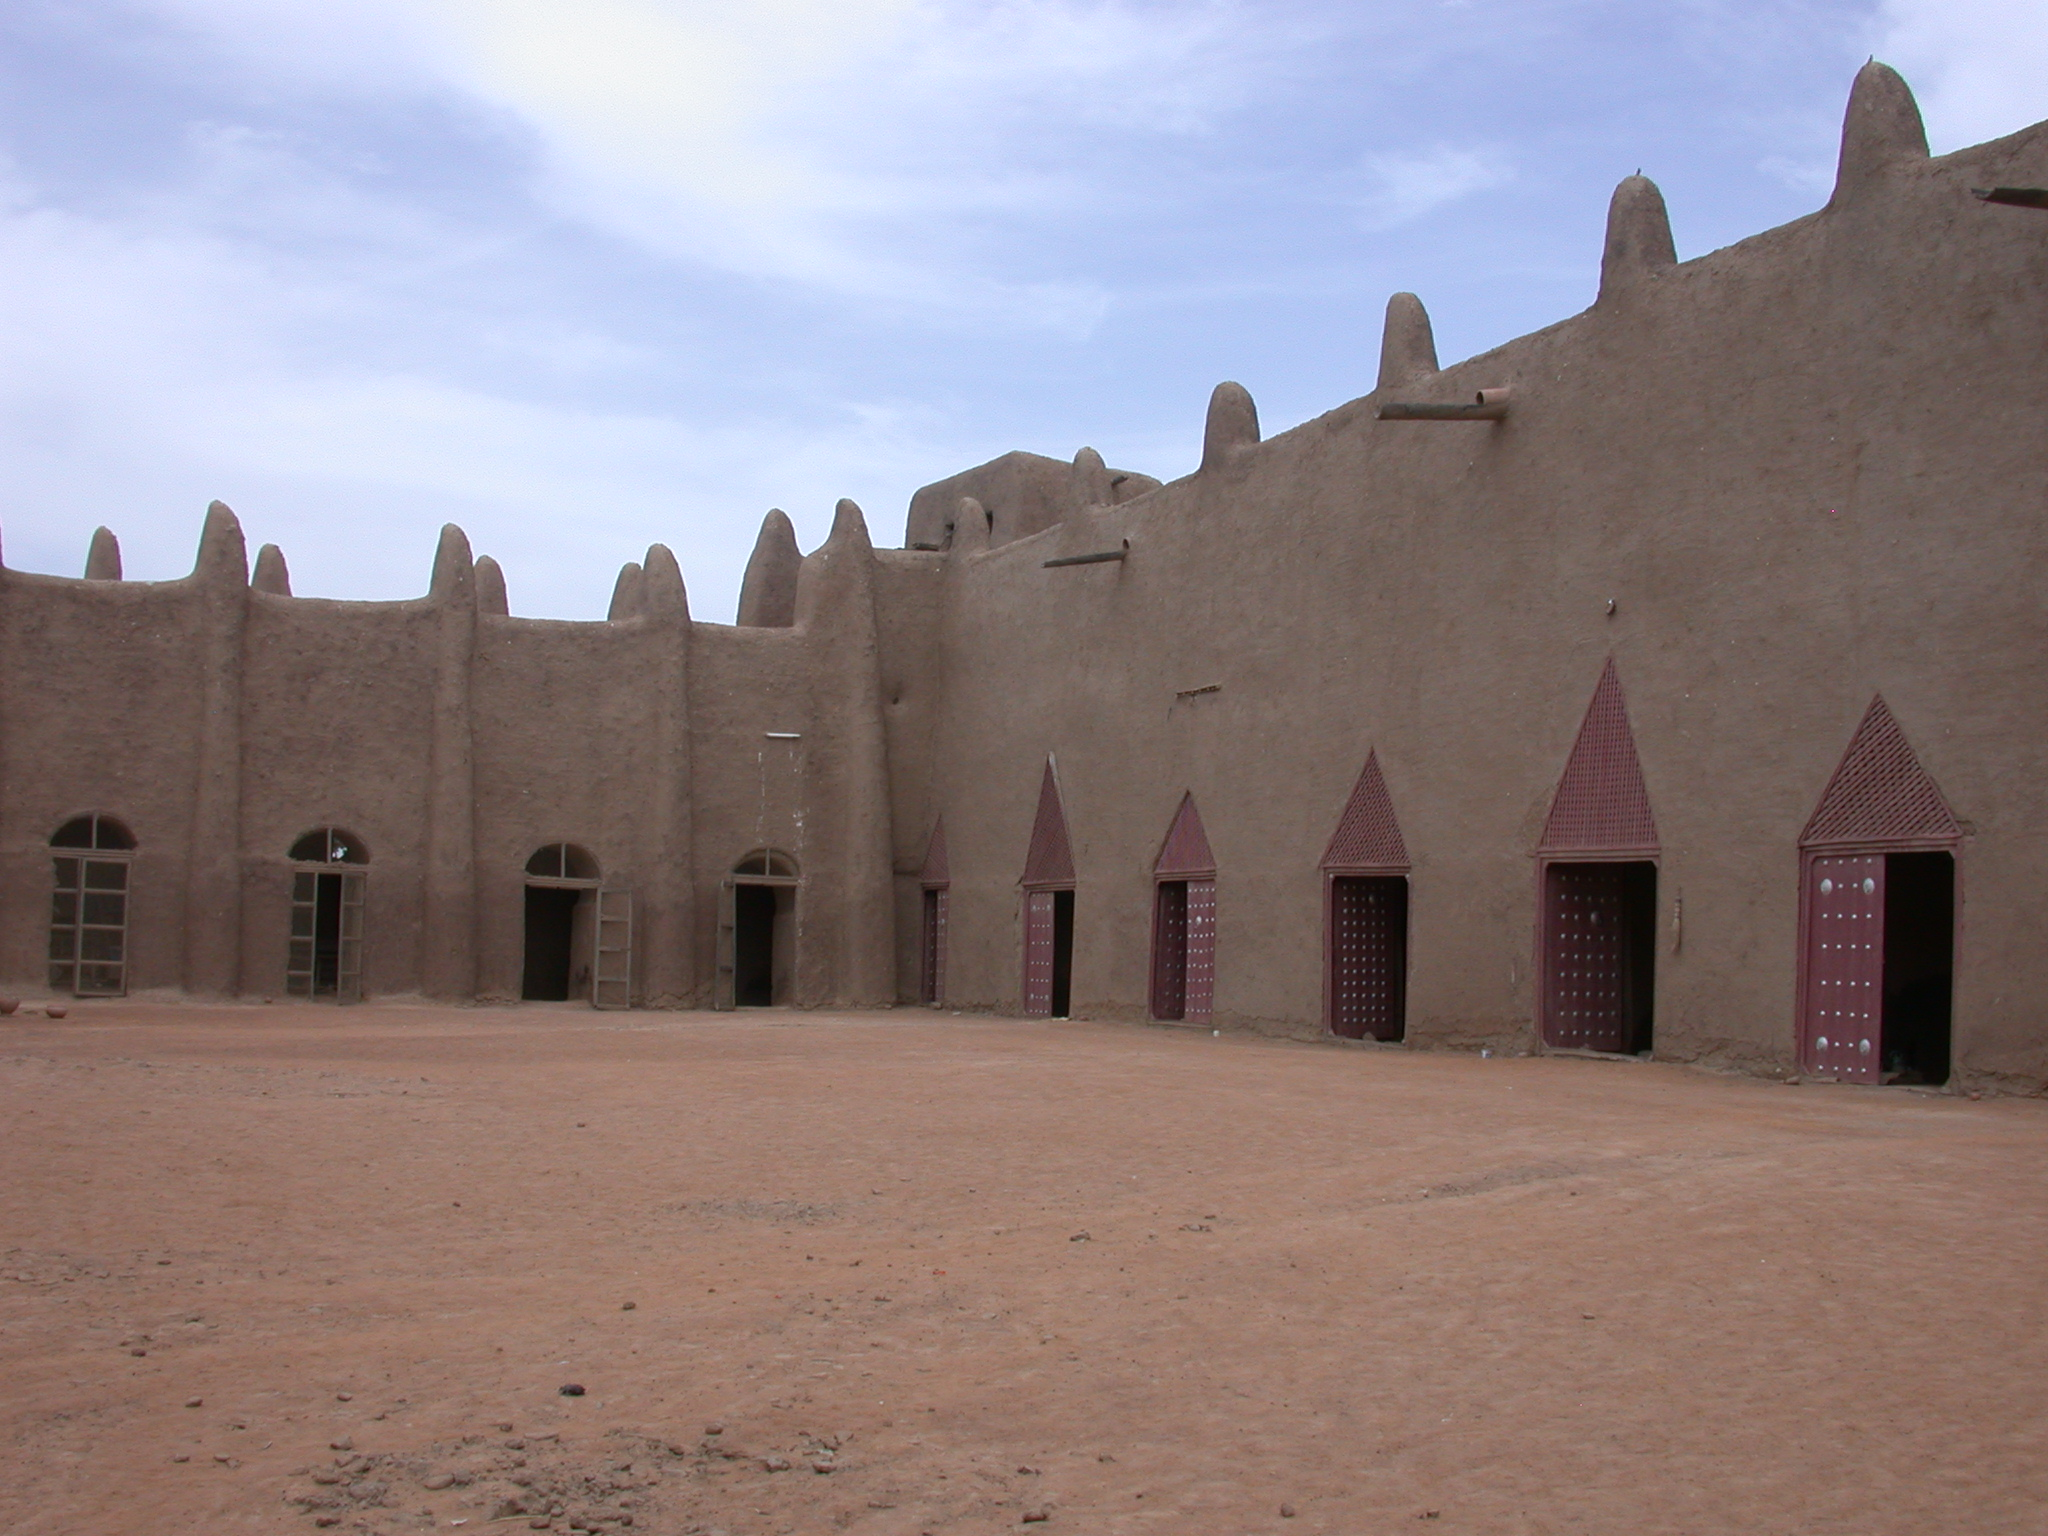 Courtyard of Mosque in Jenne, Mali